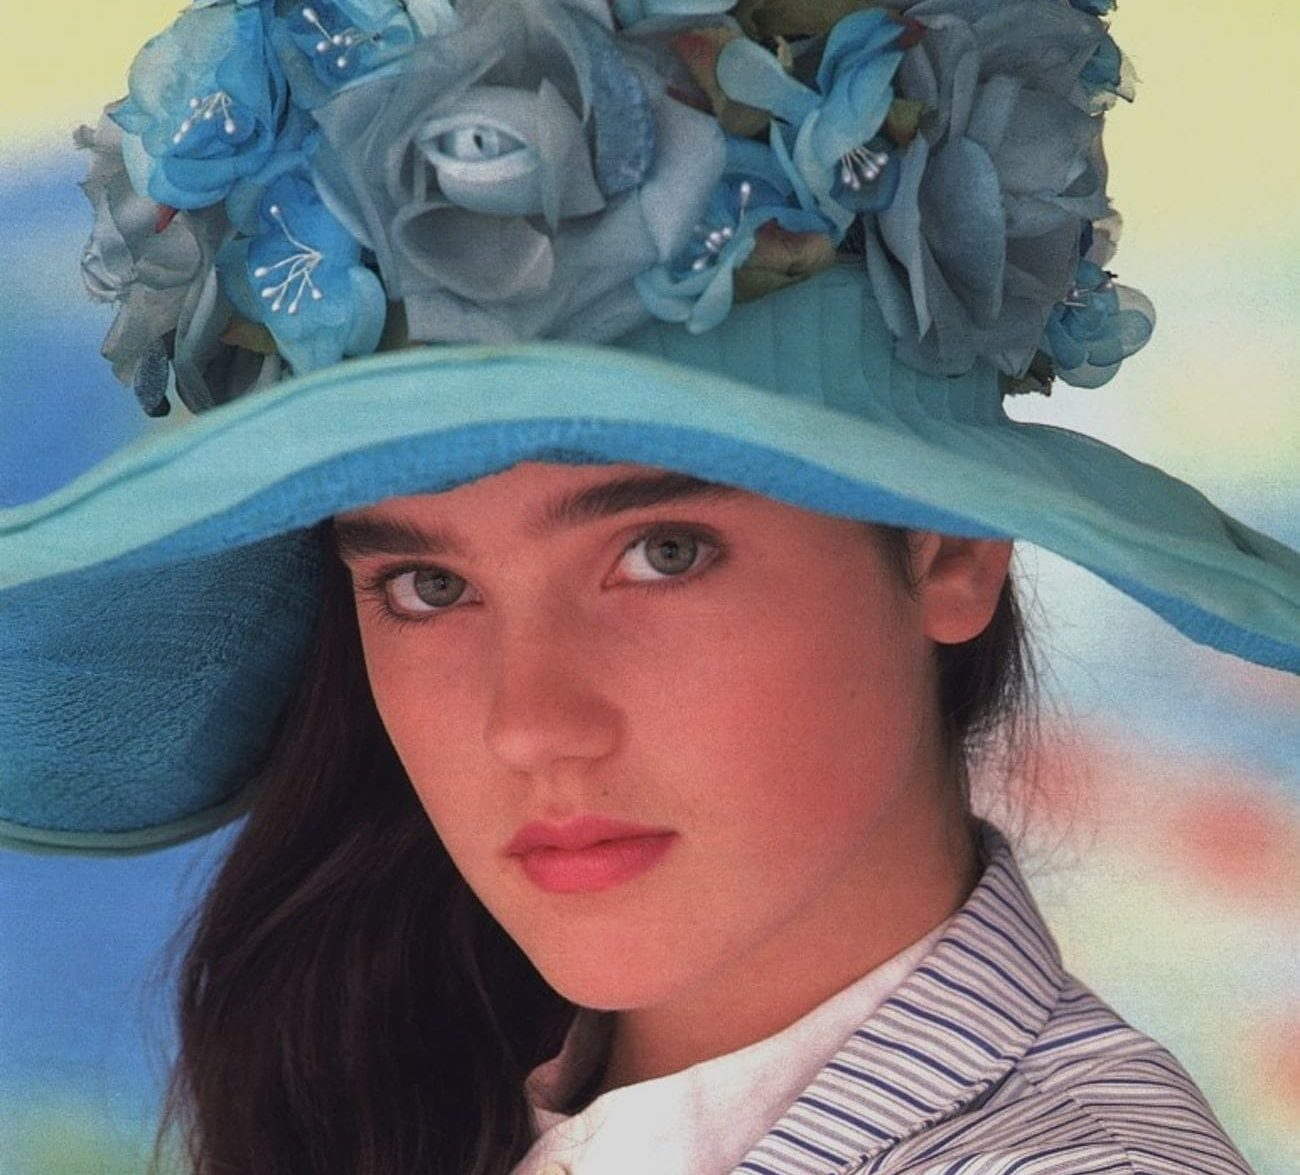 young jennifer connelly in striped dress and blue hat photo u1 e1609949814513 20 Things You Probably Didn't Know About Jennifer Connelly